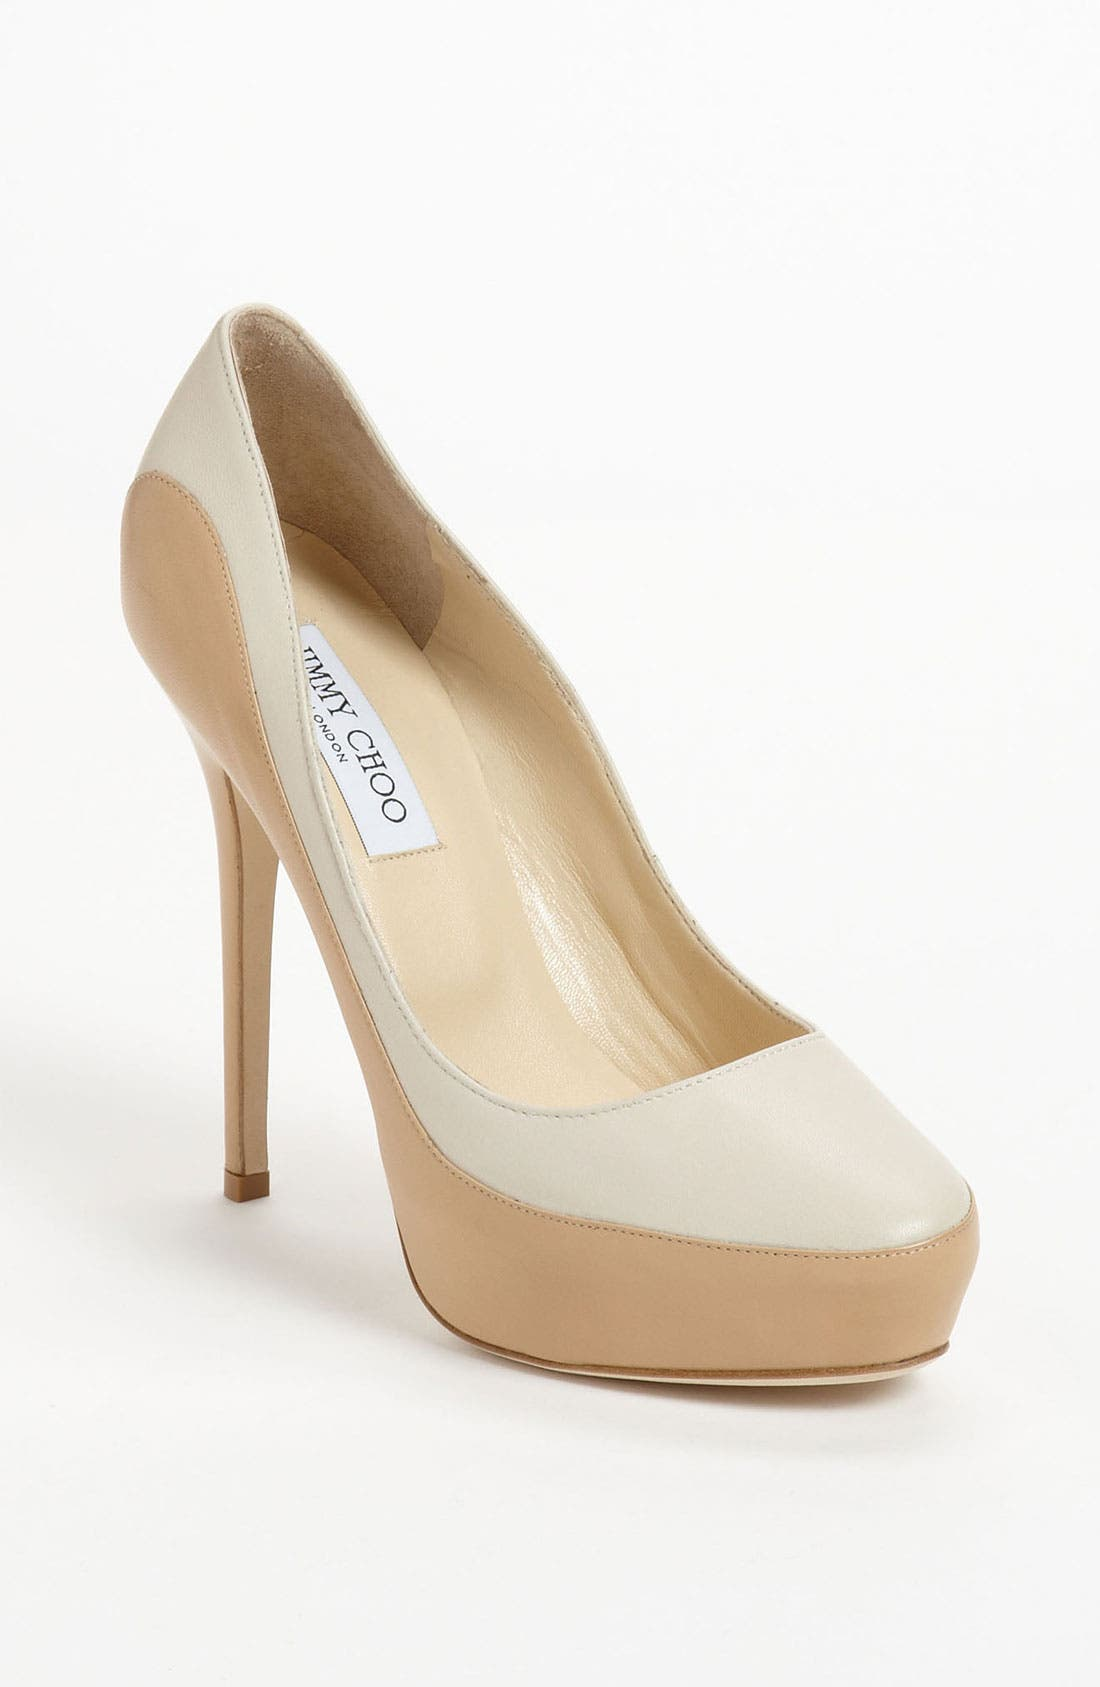 Alternate Image 1 Selected - Jimmy Choo 'Sepia' Pump